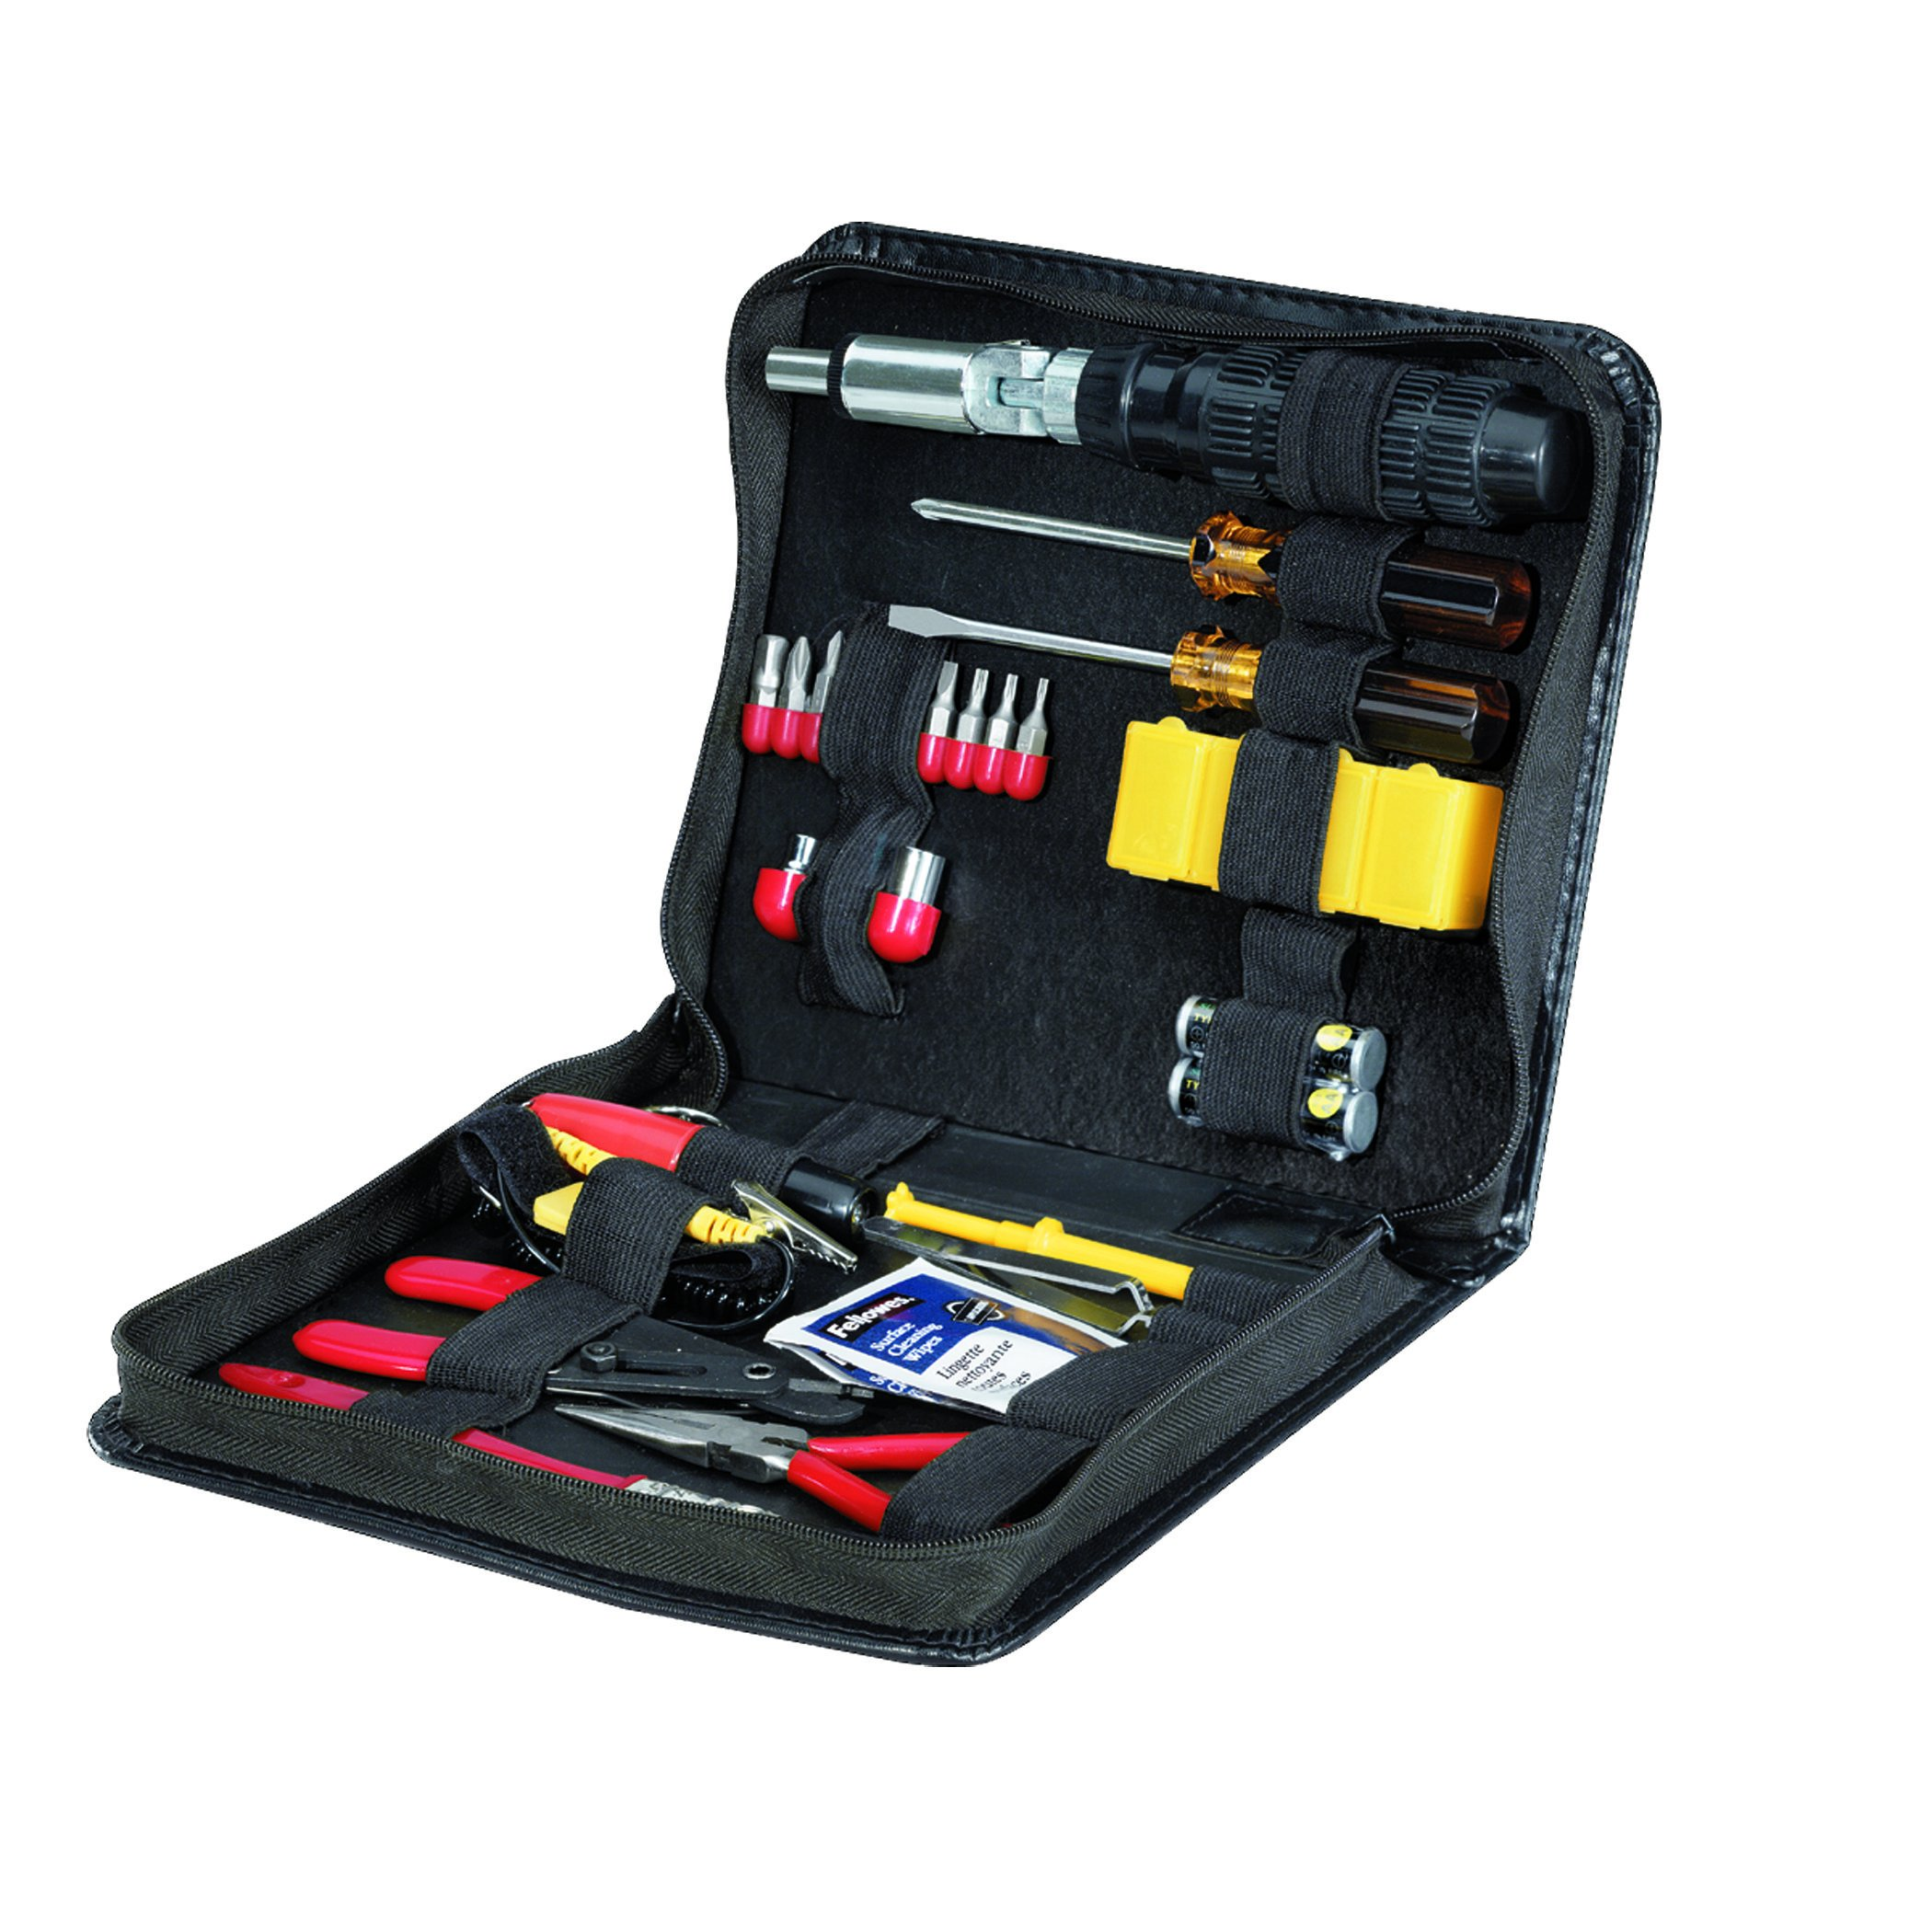 Fellowes Premium 30 Piece Computer Tool Kit by Fellowes